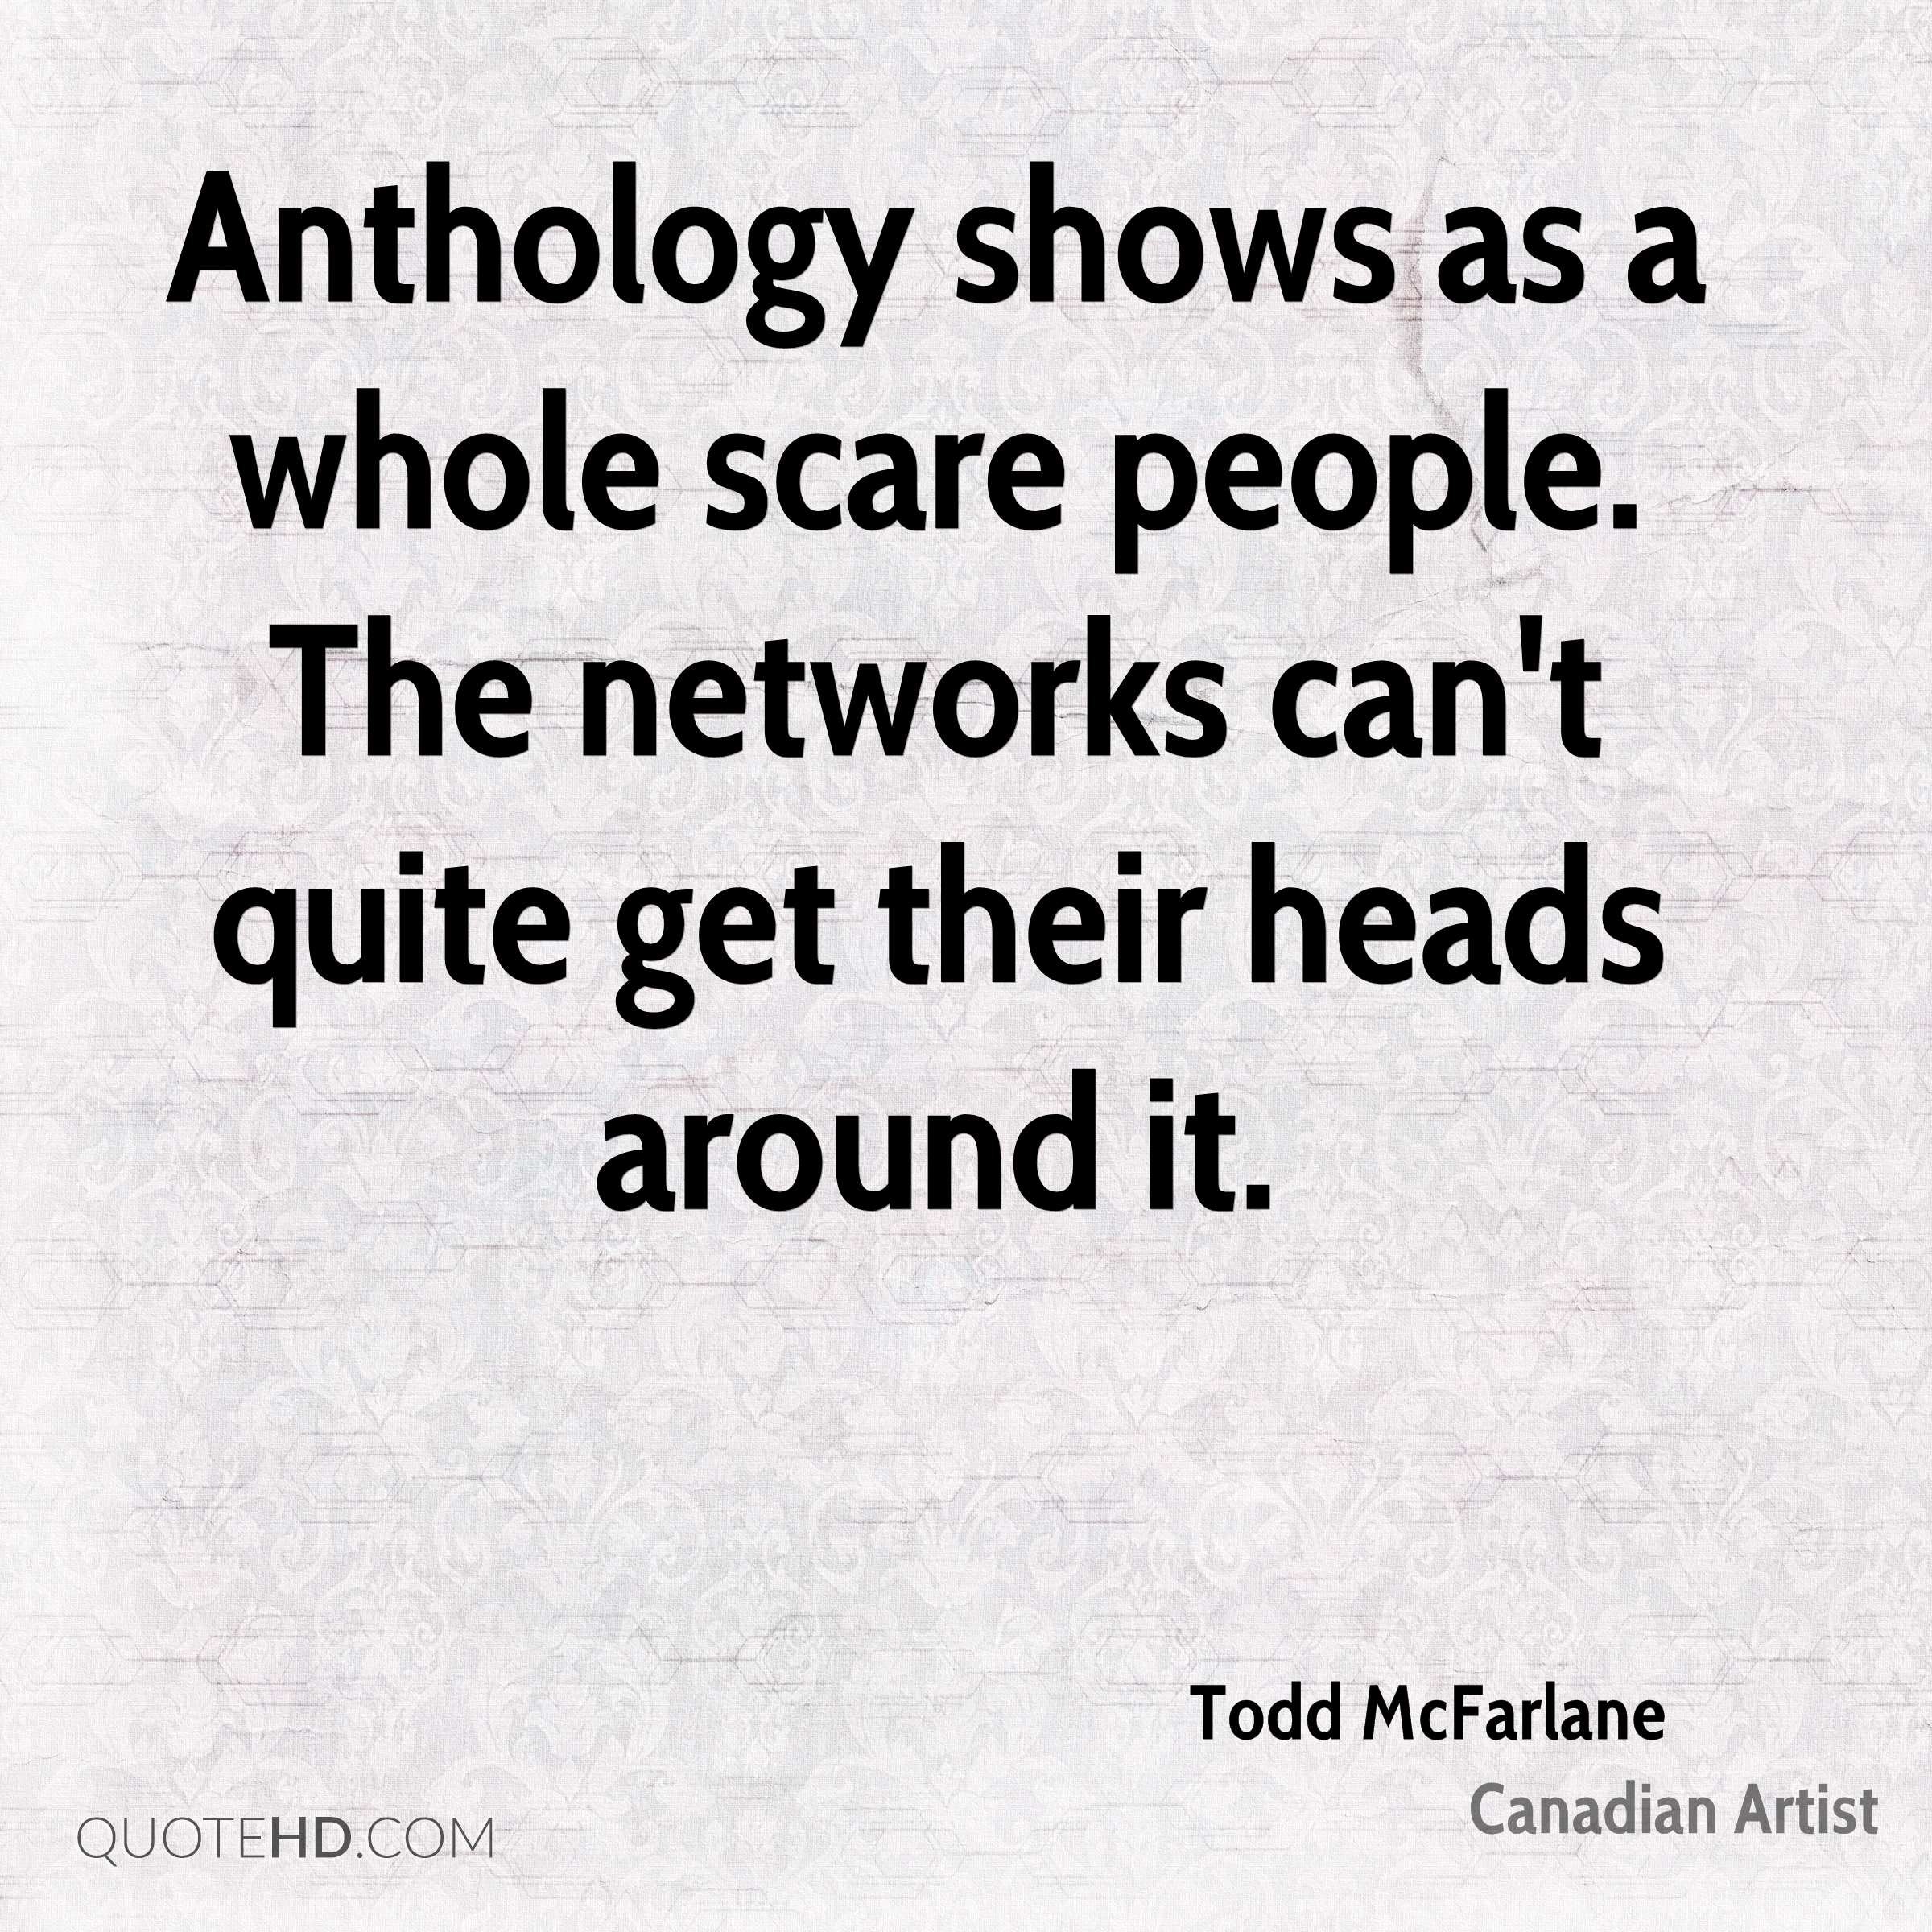 Anthology shows as a whole scare people. The networks can't quite get their heads around it.